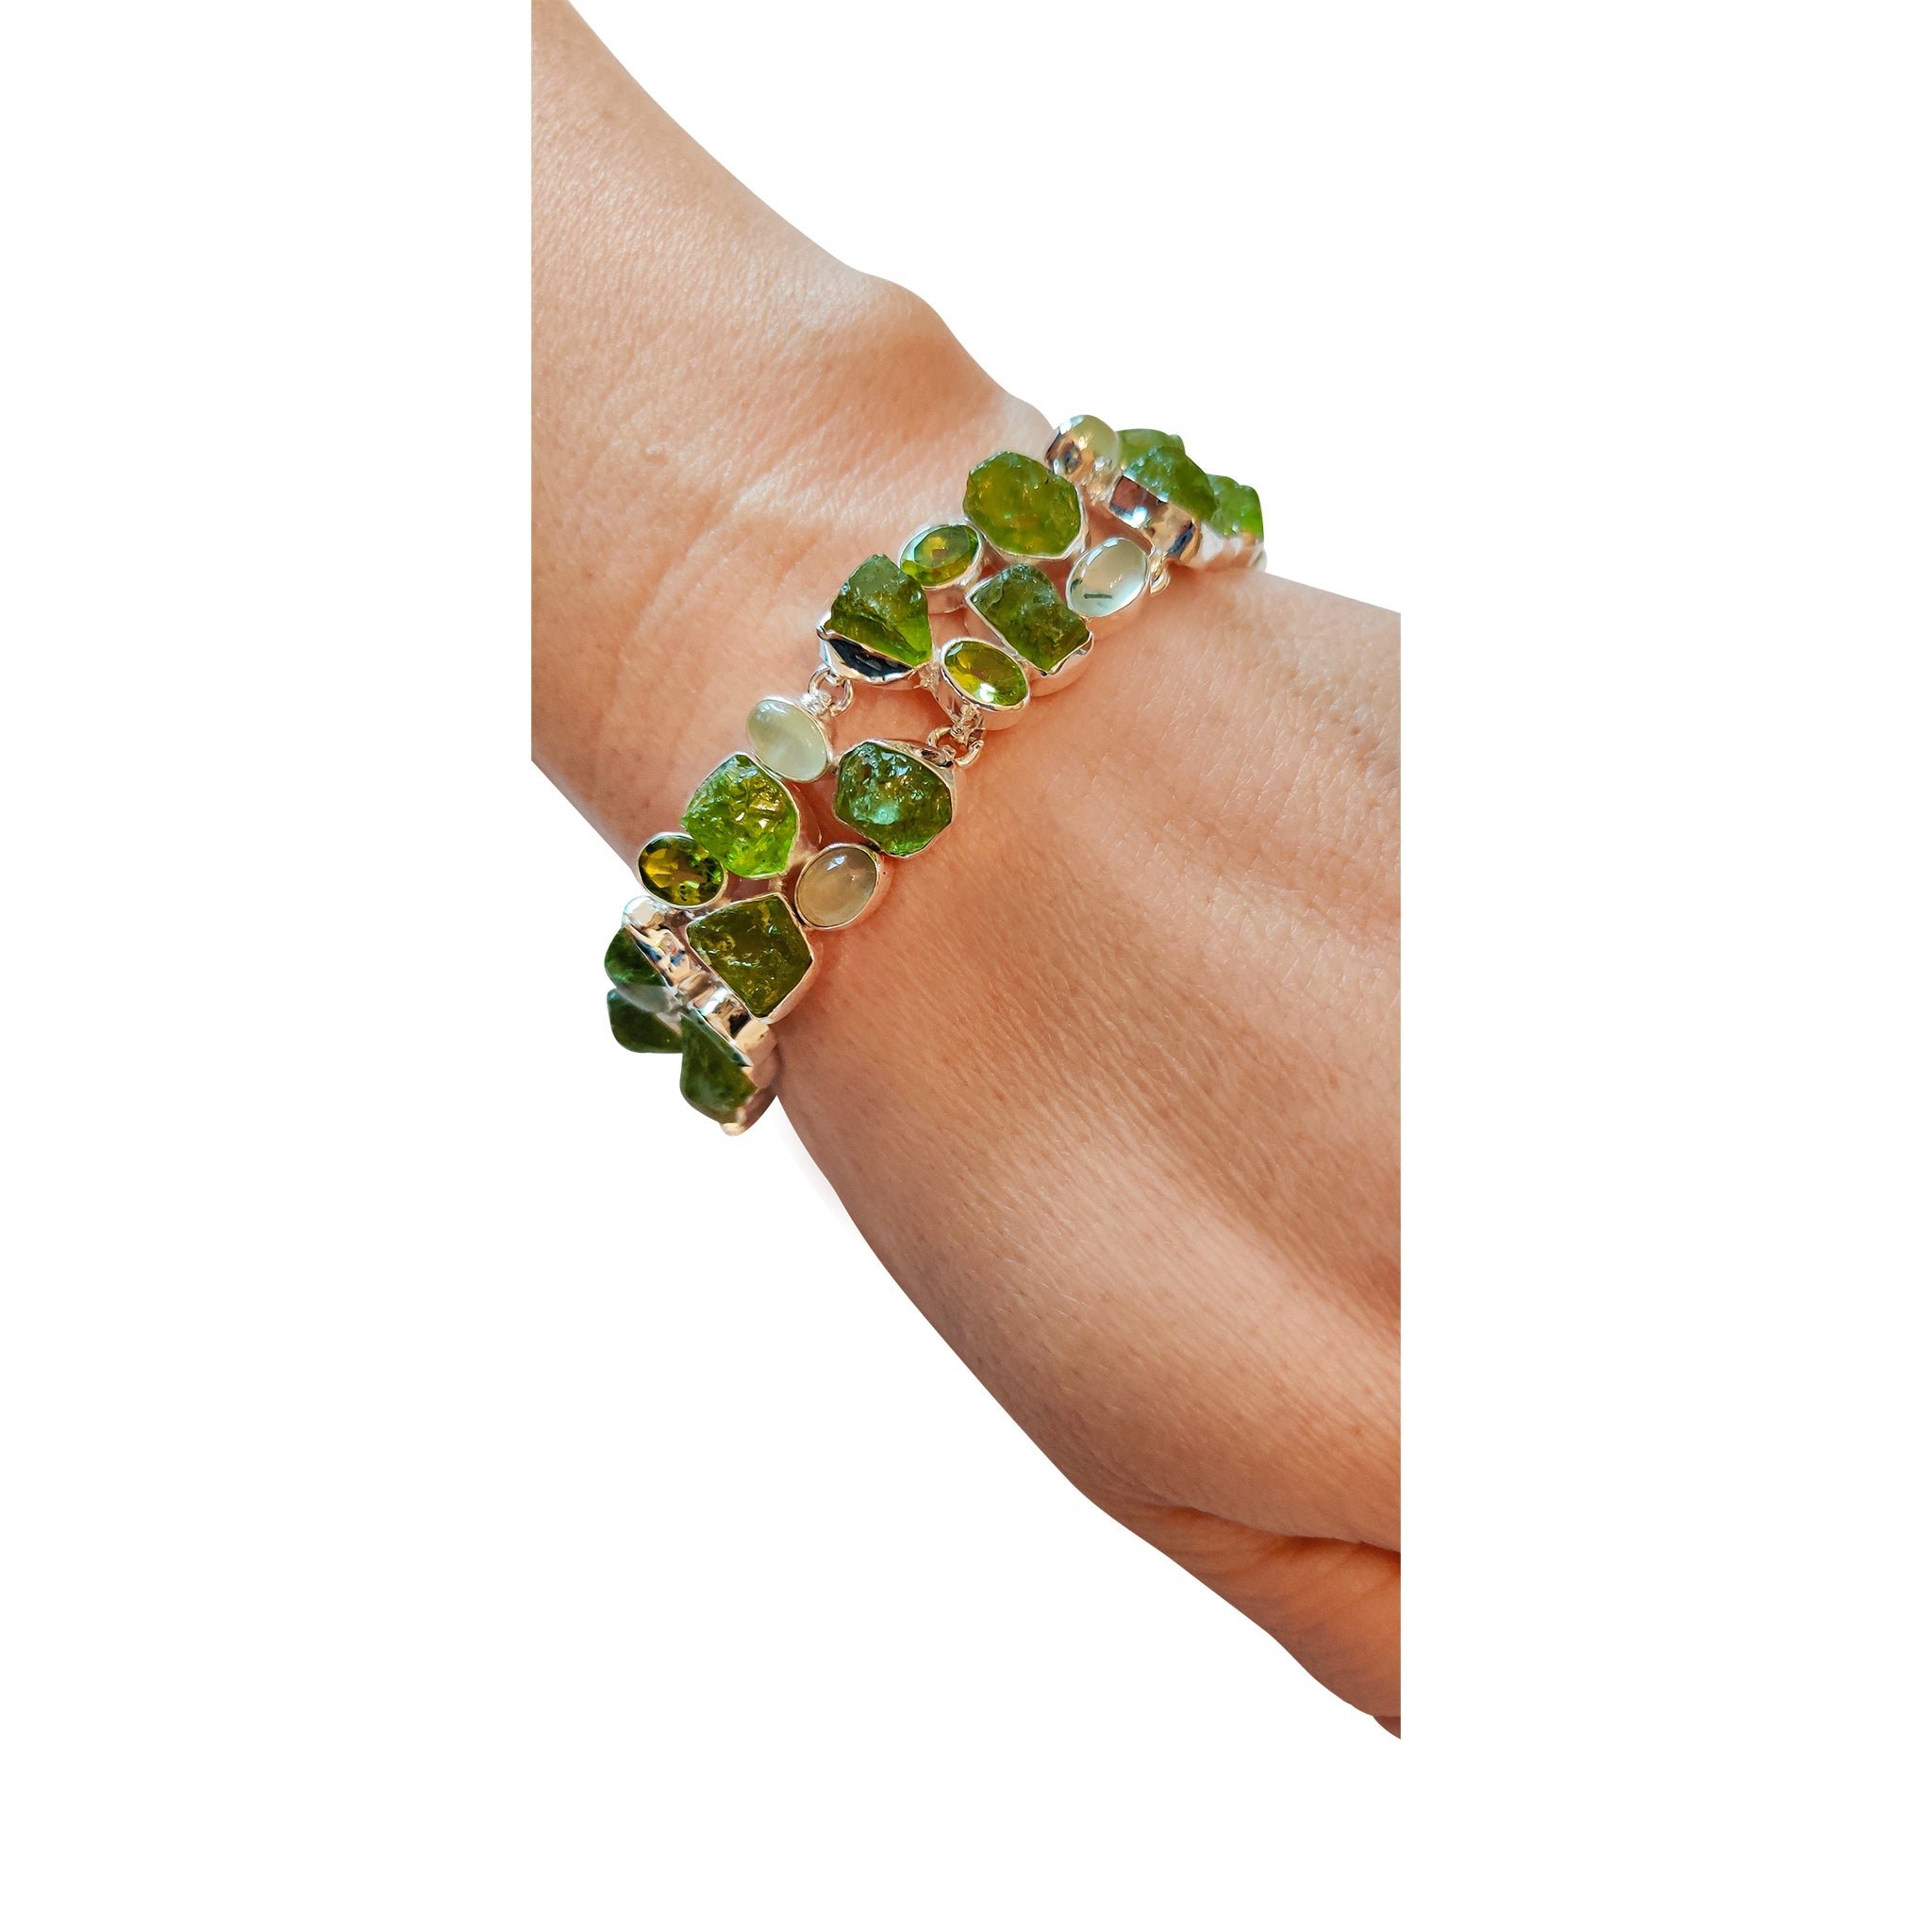 Beautiful 12ct Peridot Bracelet